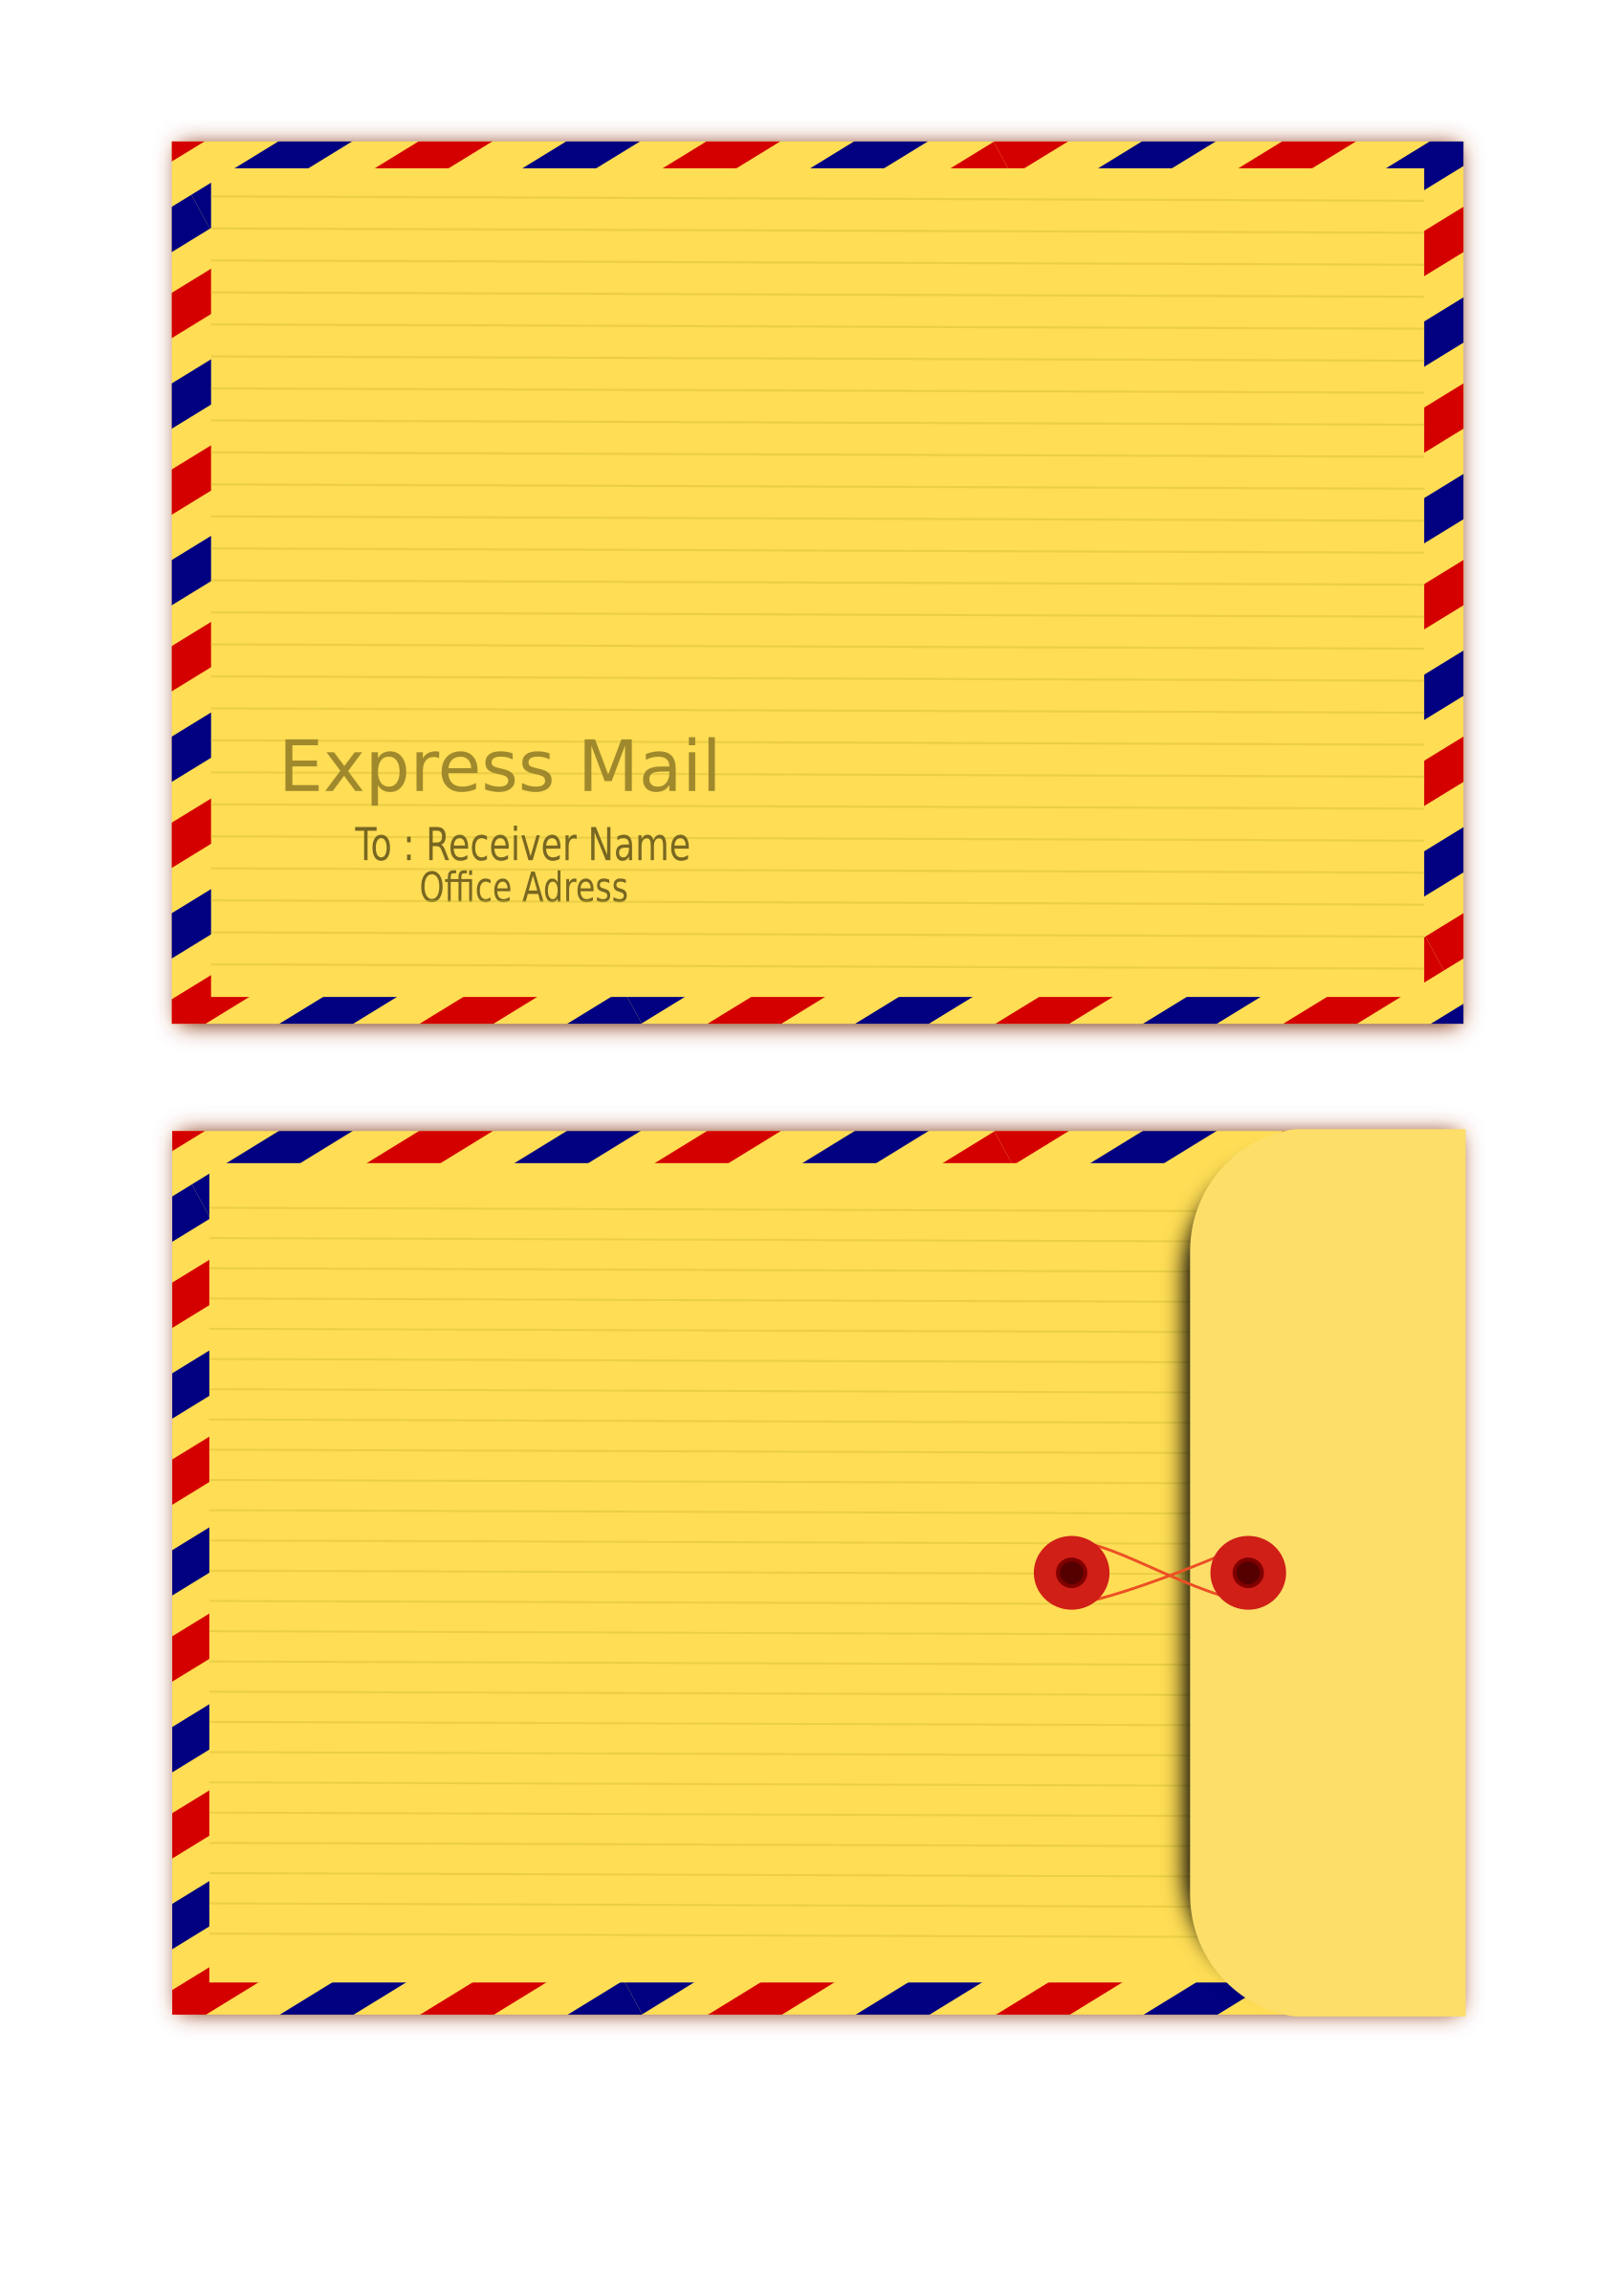 Express Mail by mahfud92